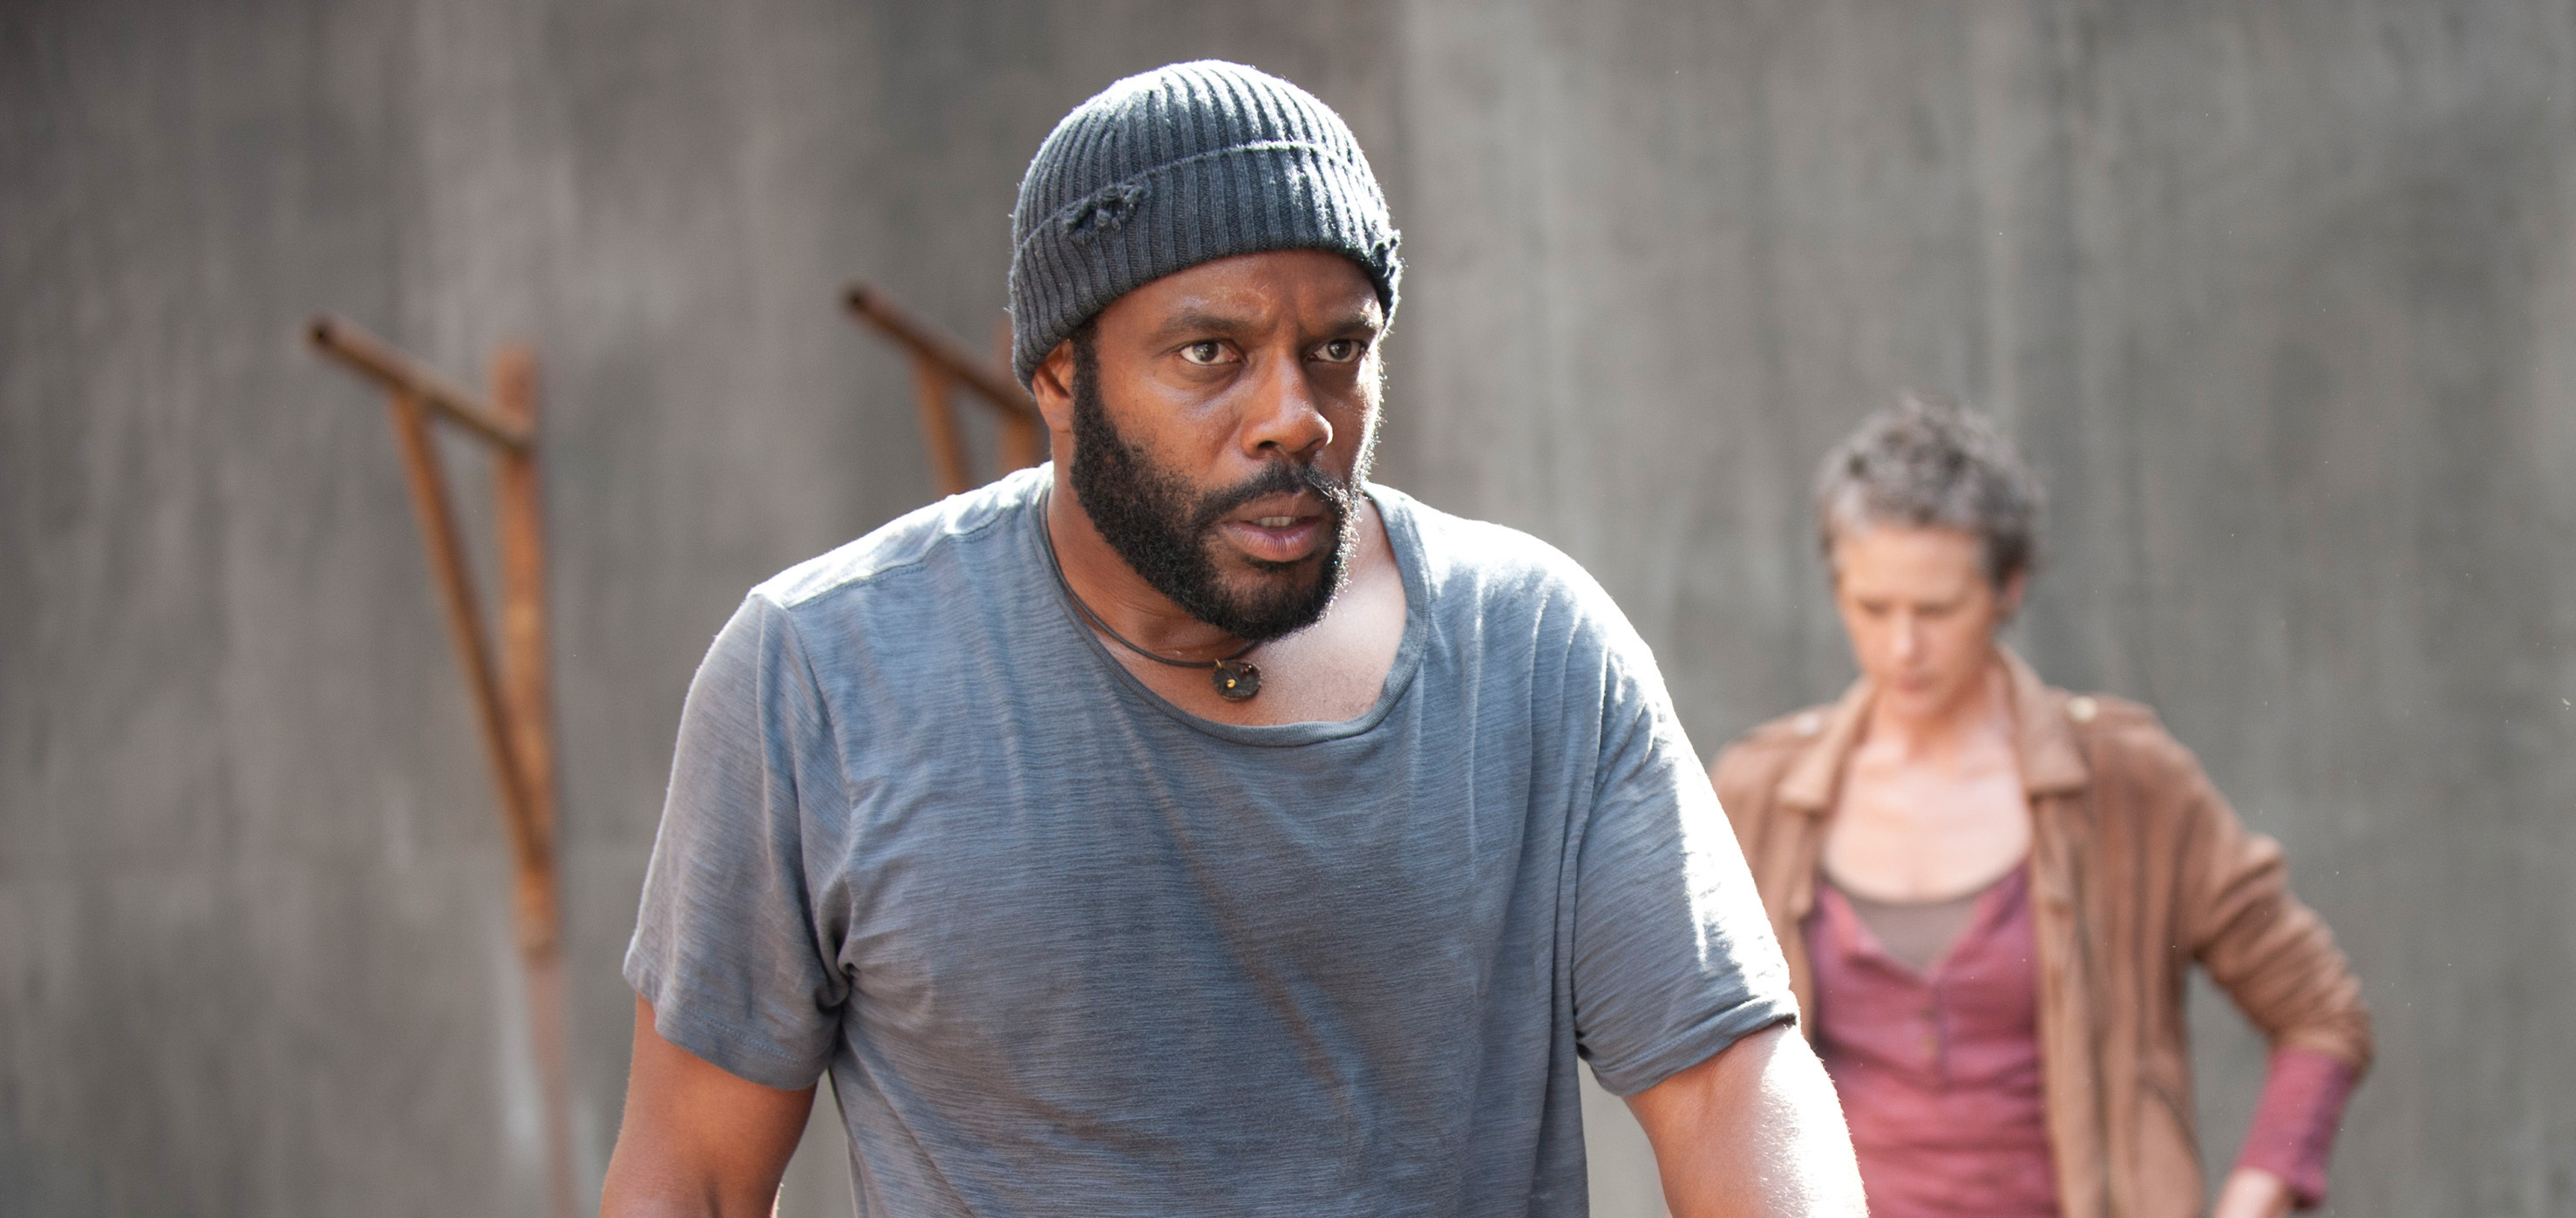 Por dentro de The Walking Dead: Elenco e produtores comentam o episódio S04E03 -